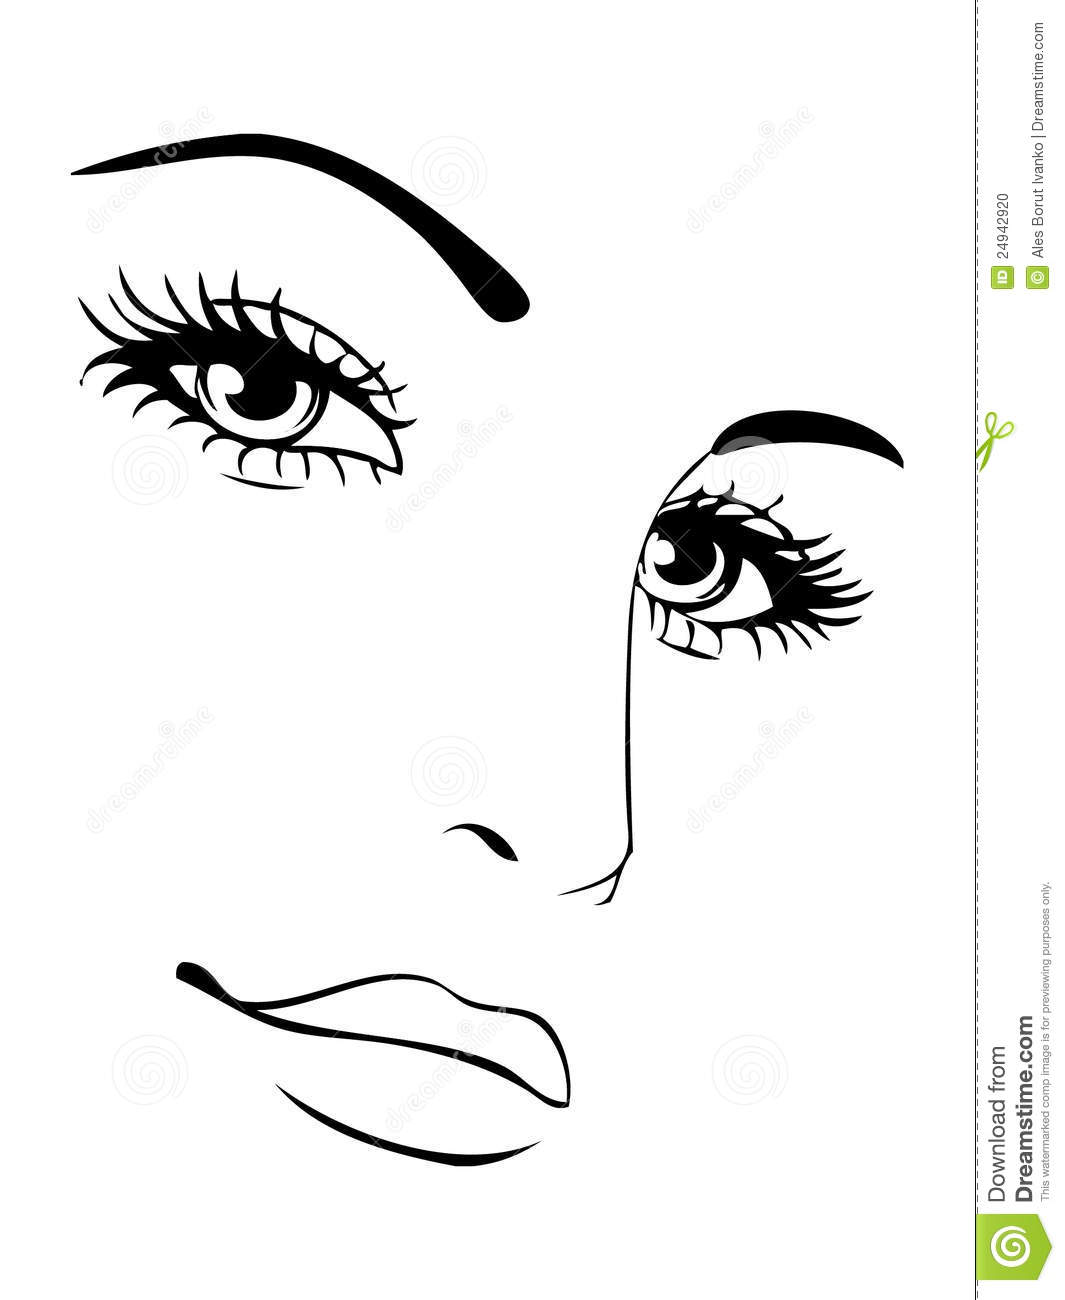 Face Sketch Lineart For Cosmetic Study Stock Illustration